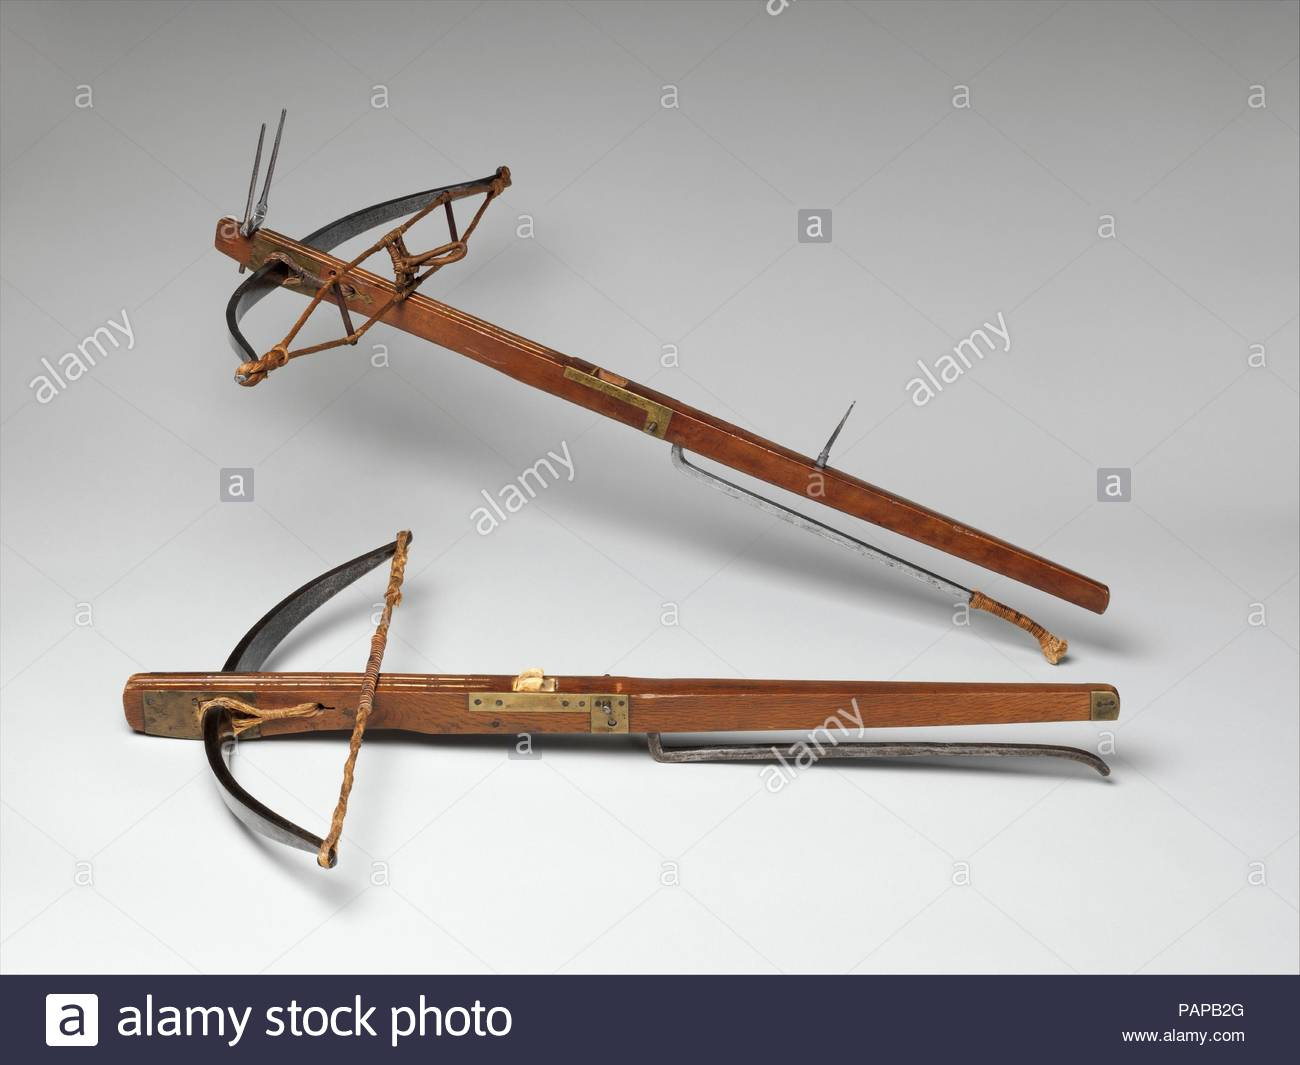 crossbow-with-spanning-lever-culture-spanish-possibly-valencia-or-toledo-lever-possibly-madrid-dimensions-crossbow-l-32-58-in-829-cm-w-21-12-in-546-cm-wt-6-lb-2726-g-spanning-lever-l-extend